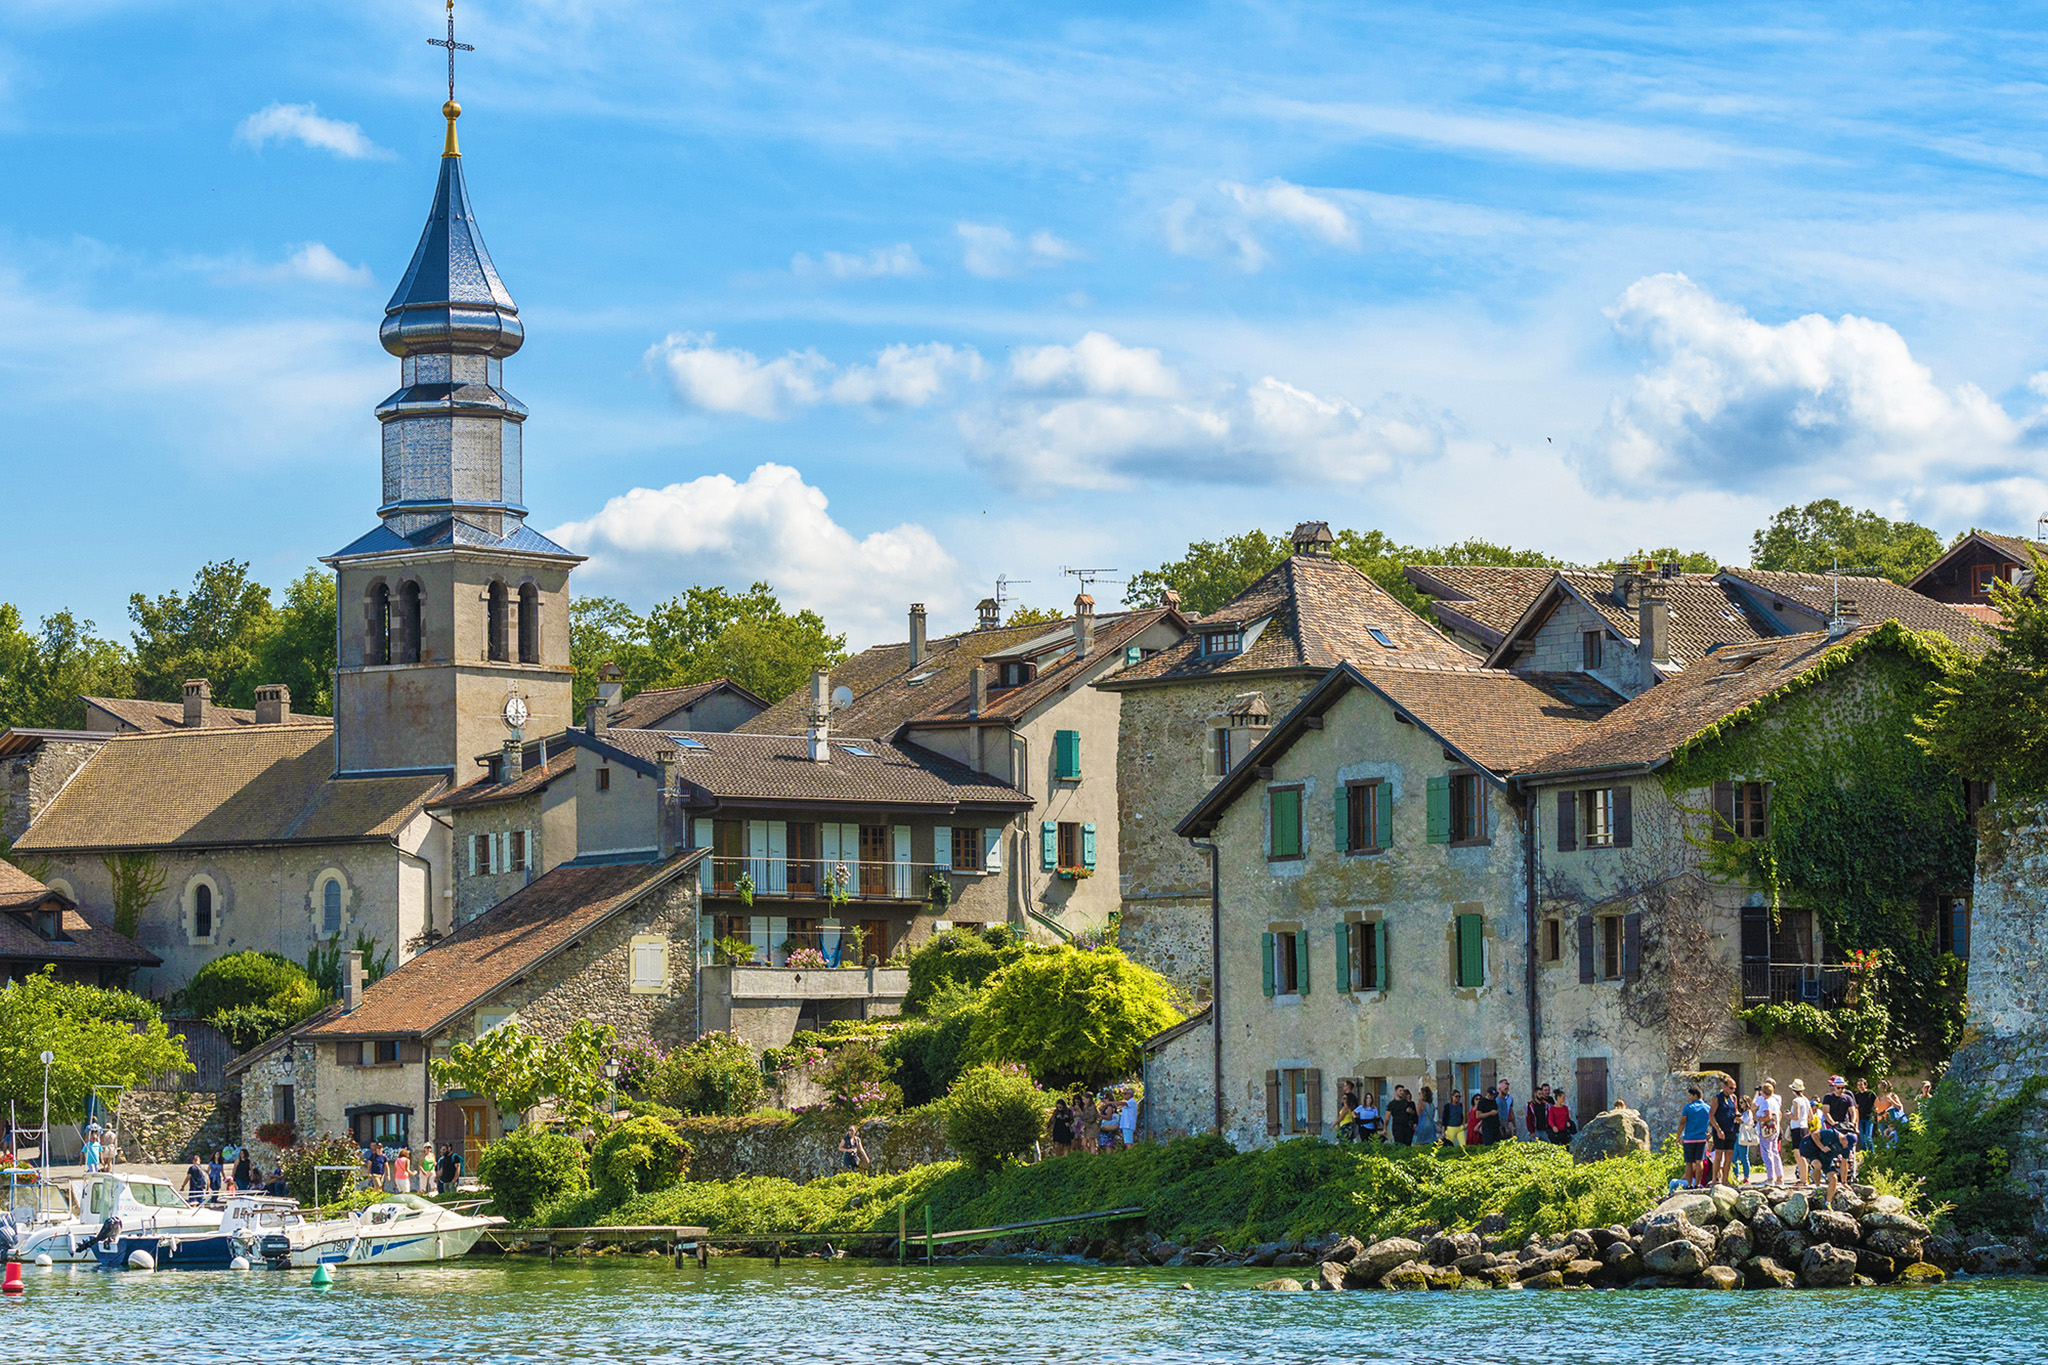 kt_2020_380_Keytours_excursions_Swisstours_yvoire5_2048_10